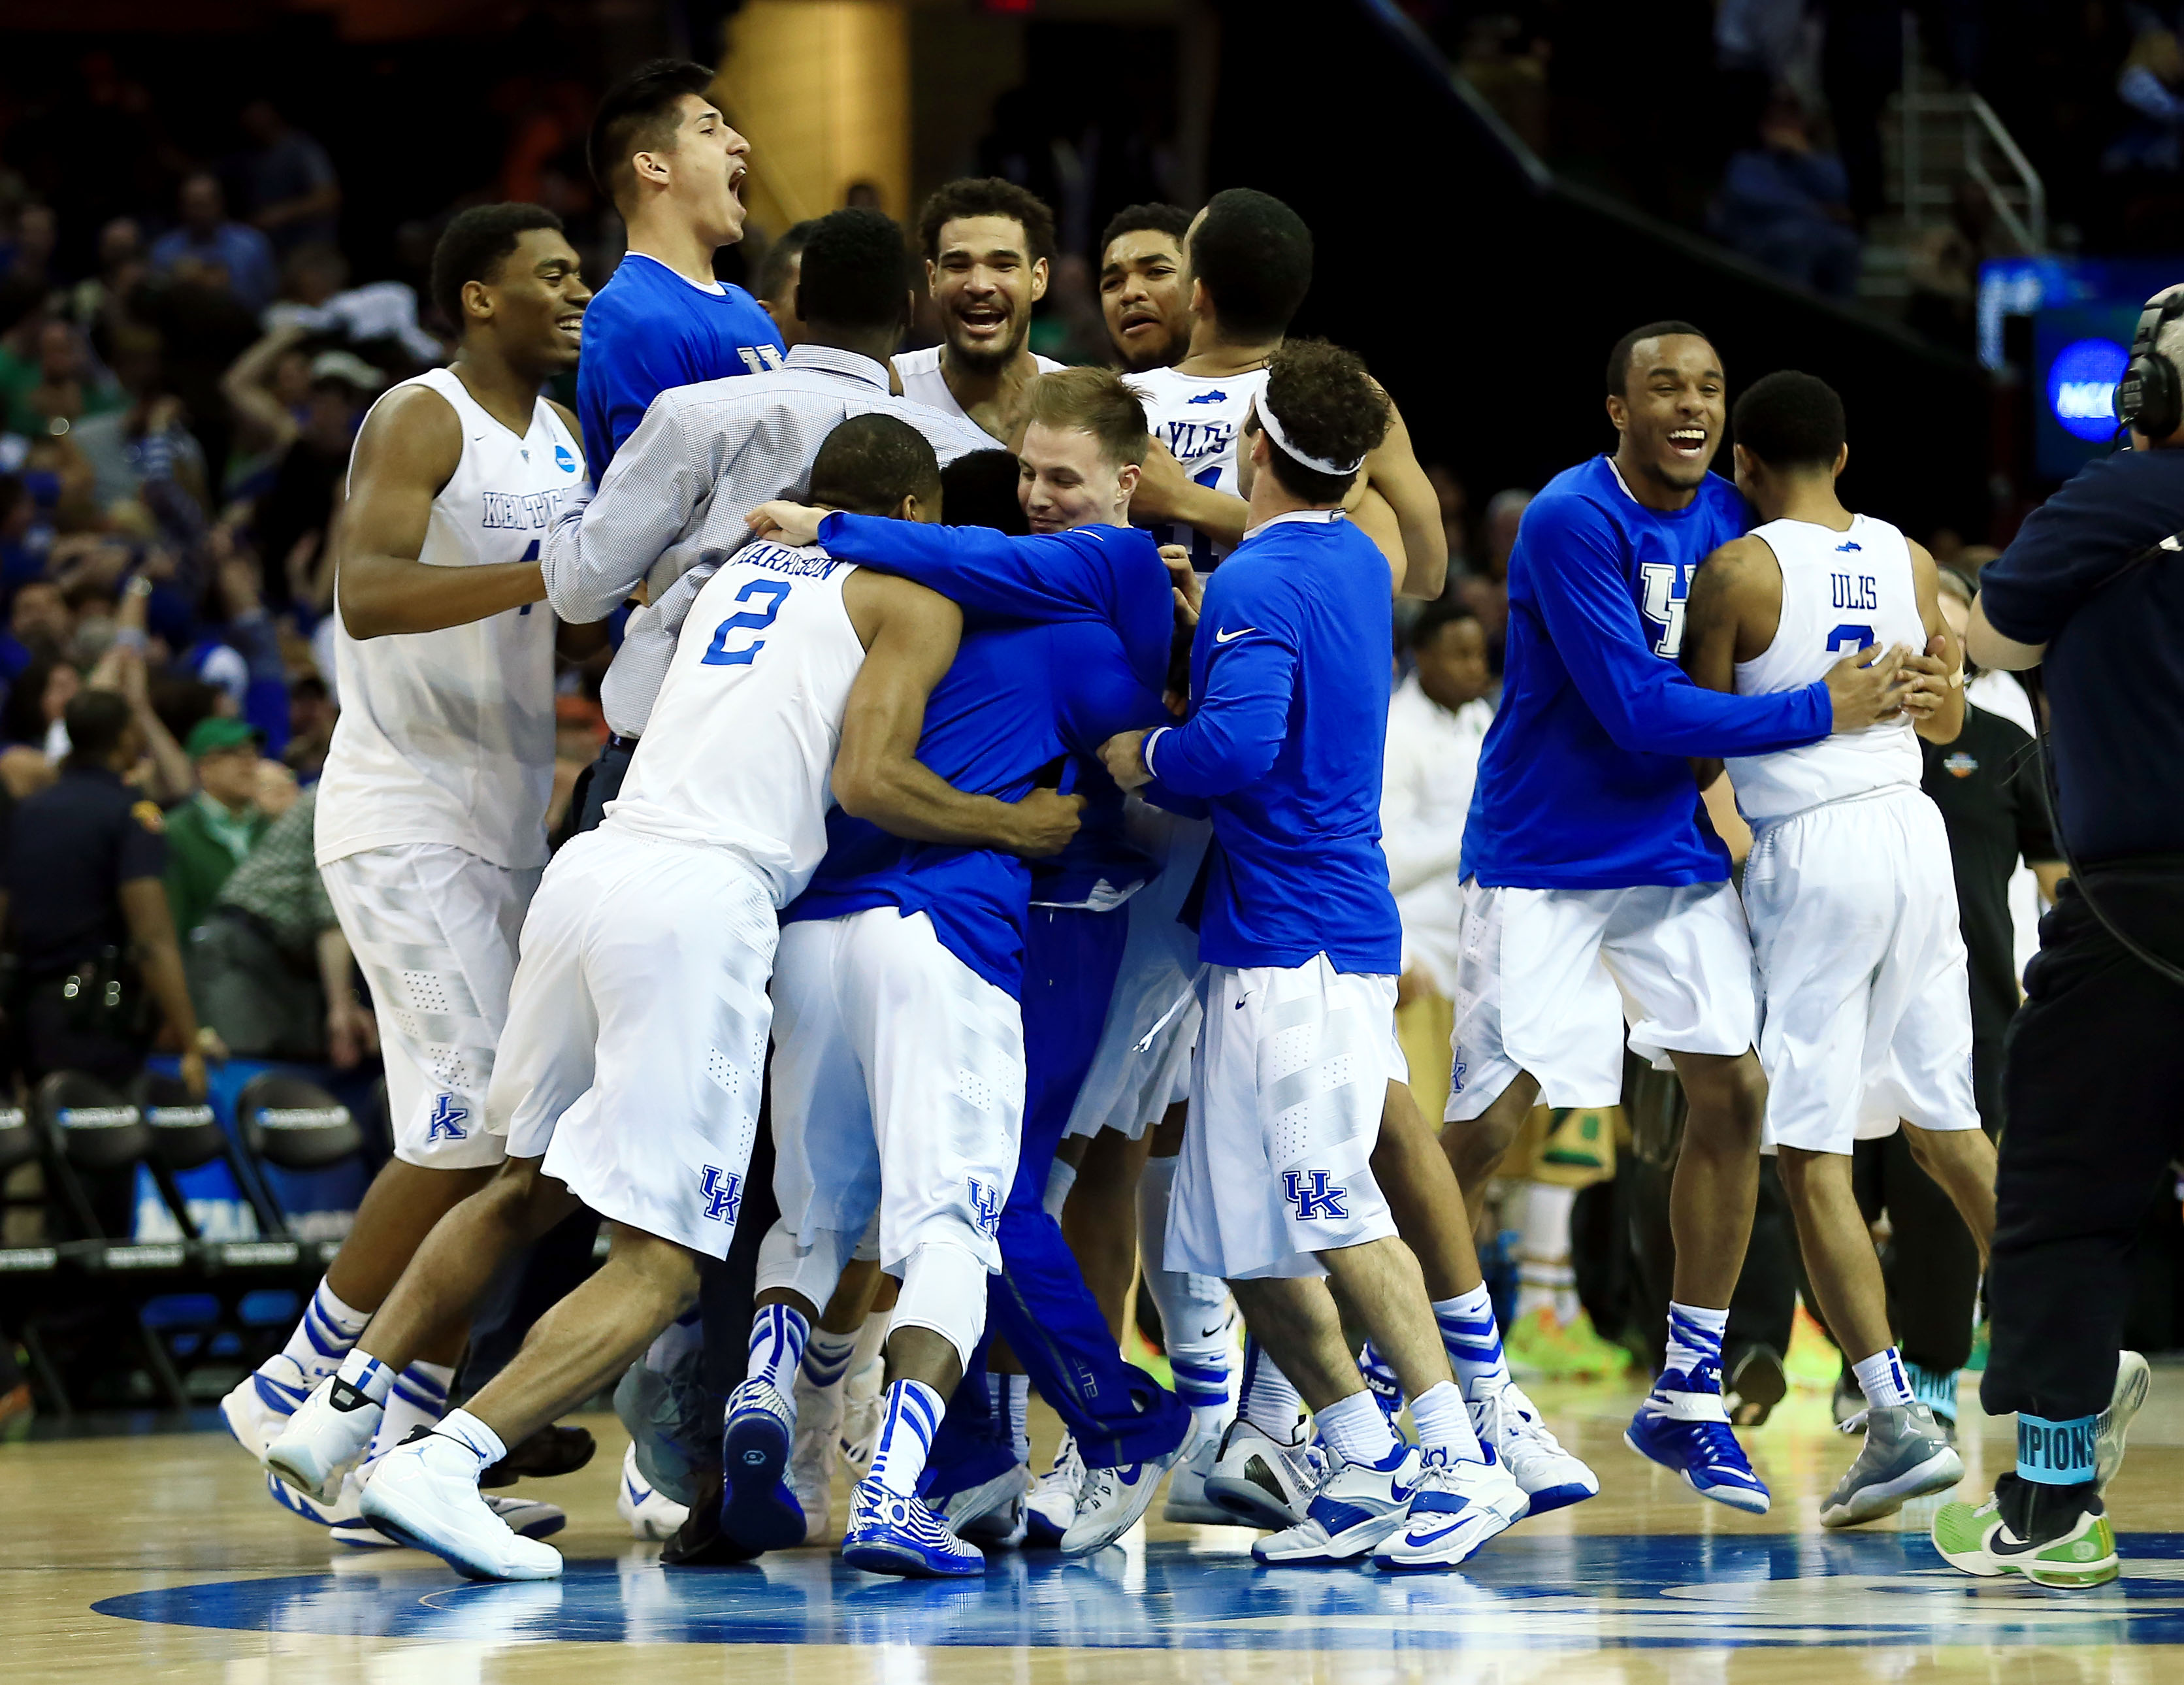 Mar 28, 2015; Cleveland, OH, USA; Kentucky Wildcats celebrate after the game against the Notre Dame Fighting Irish in the finals of the midwest regional of the 2015 NCAA Tournament at Quicken Loans Arena. Kentucky won 68-66. (Andrew Weber-USA TODAY Sports)